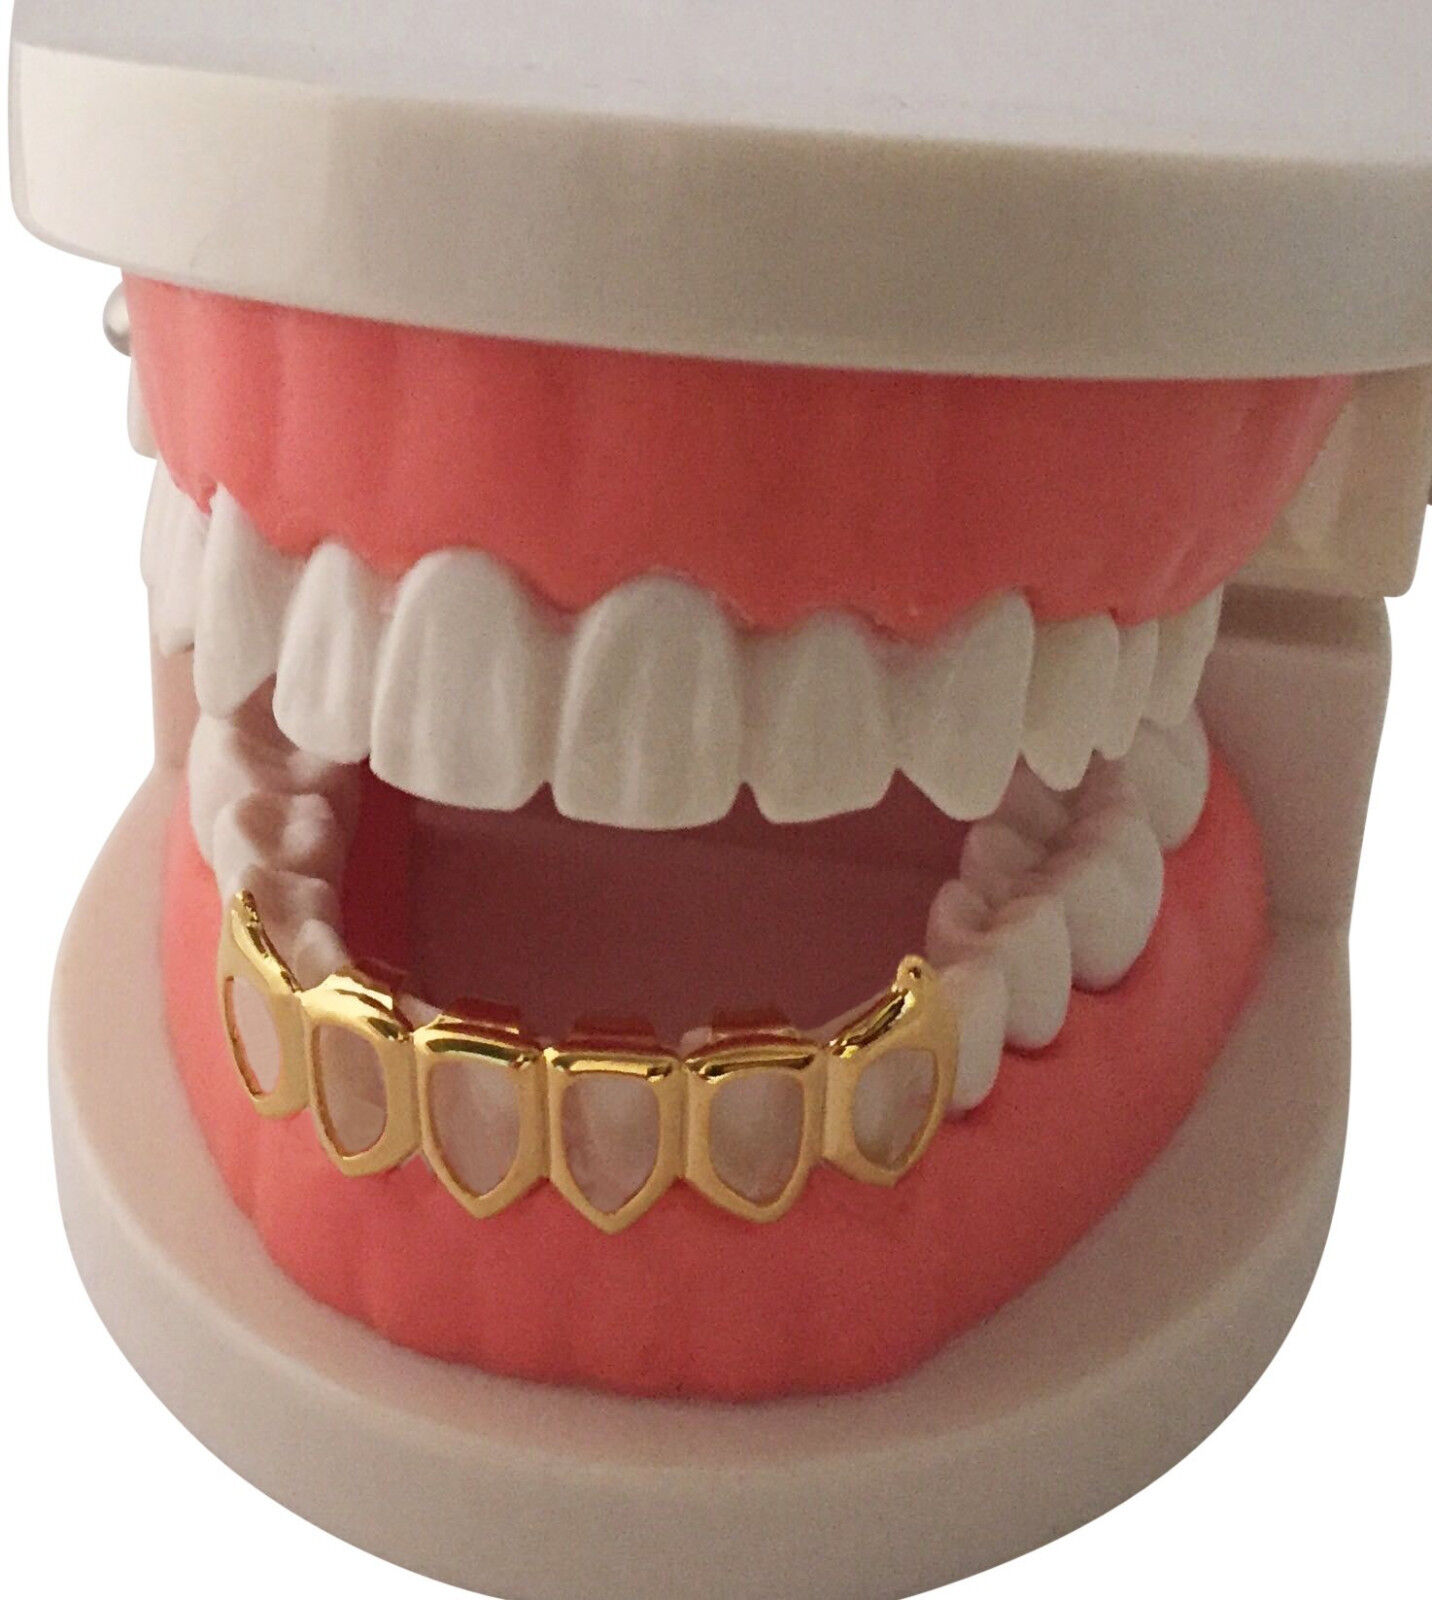 Hip Hop 14K Gold Plated Mouth Teeth Grillz Bottom Lower Open